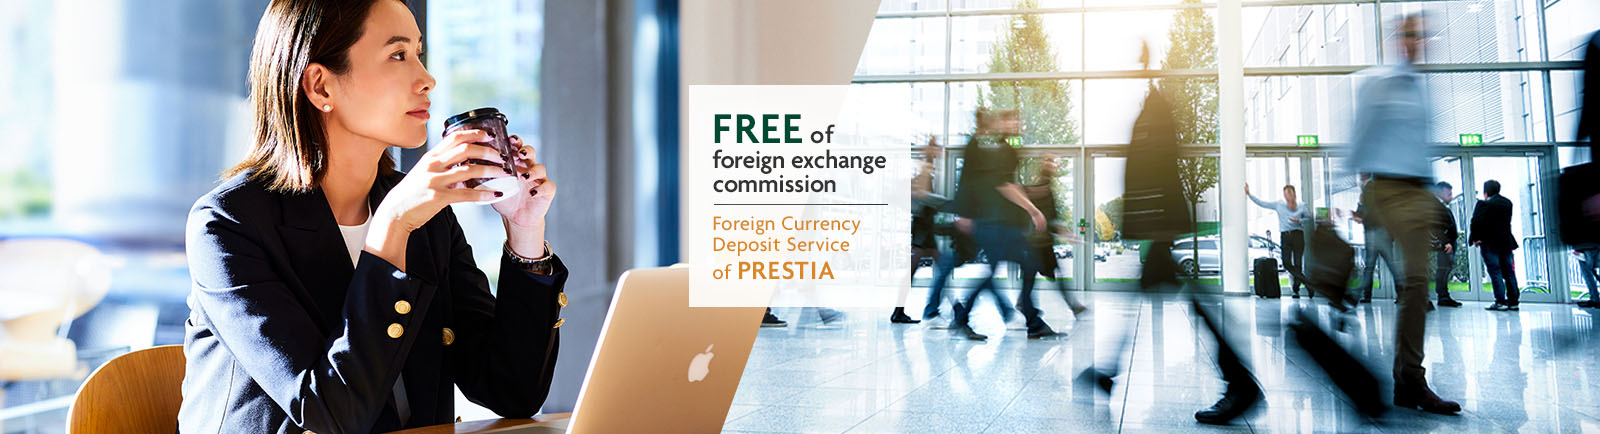 FREE of foreign exchenge commission Foreign Currency Deposit Service of PRESTIA